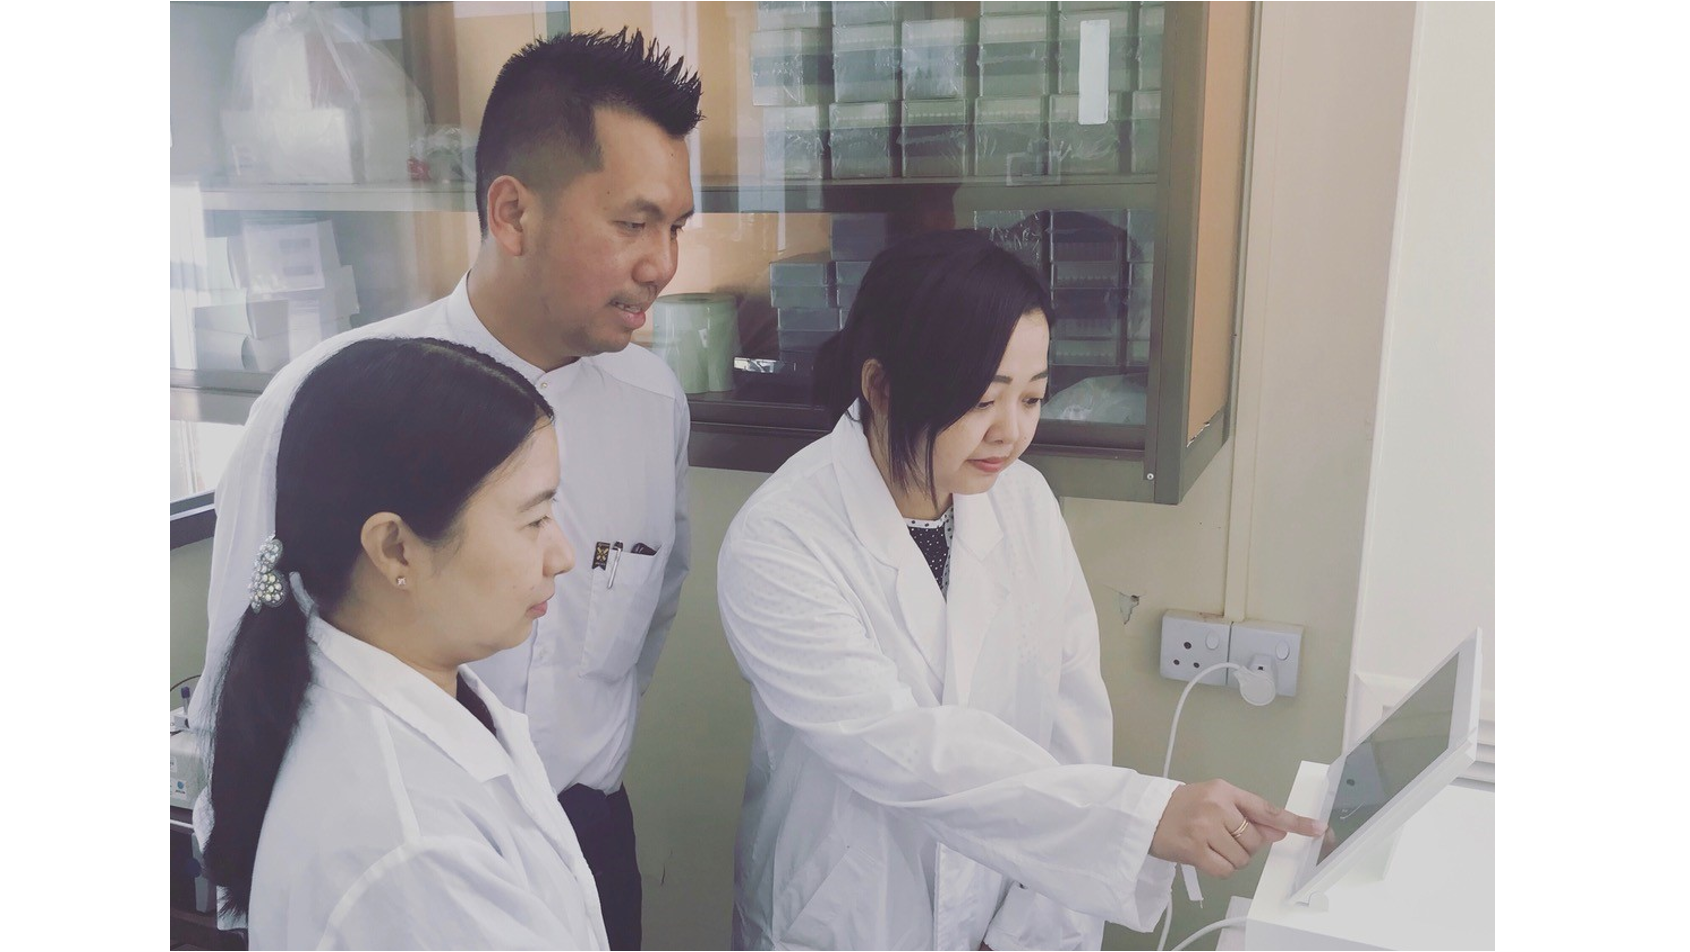 MWC researchers ramp up international infectious disease work